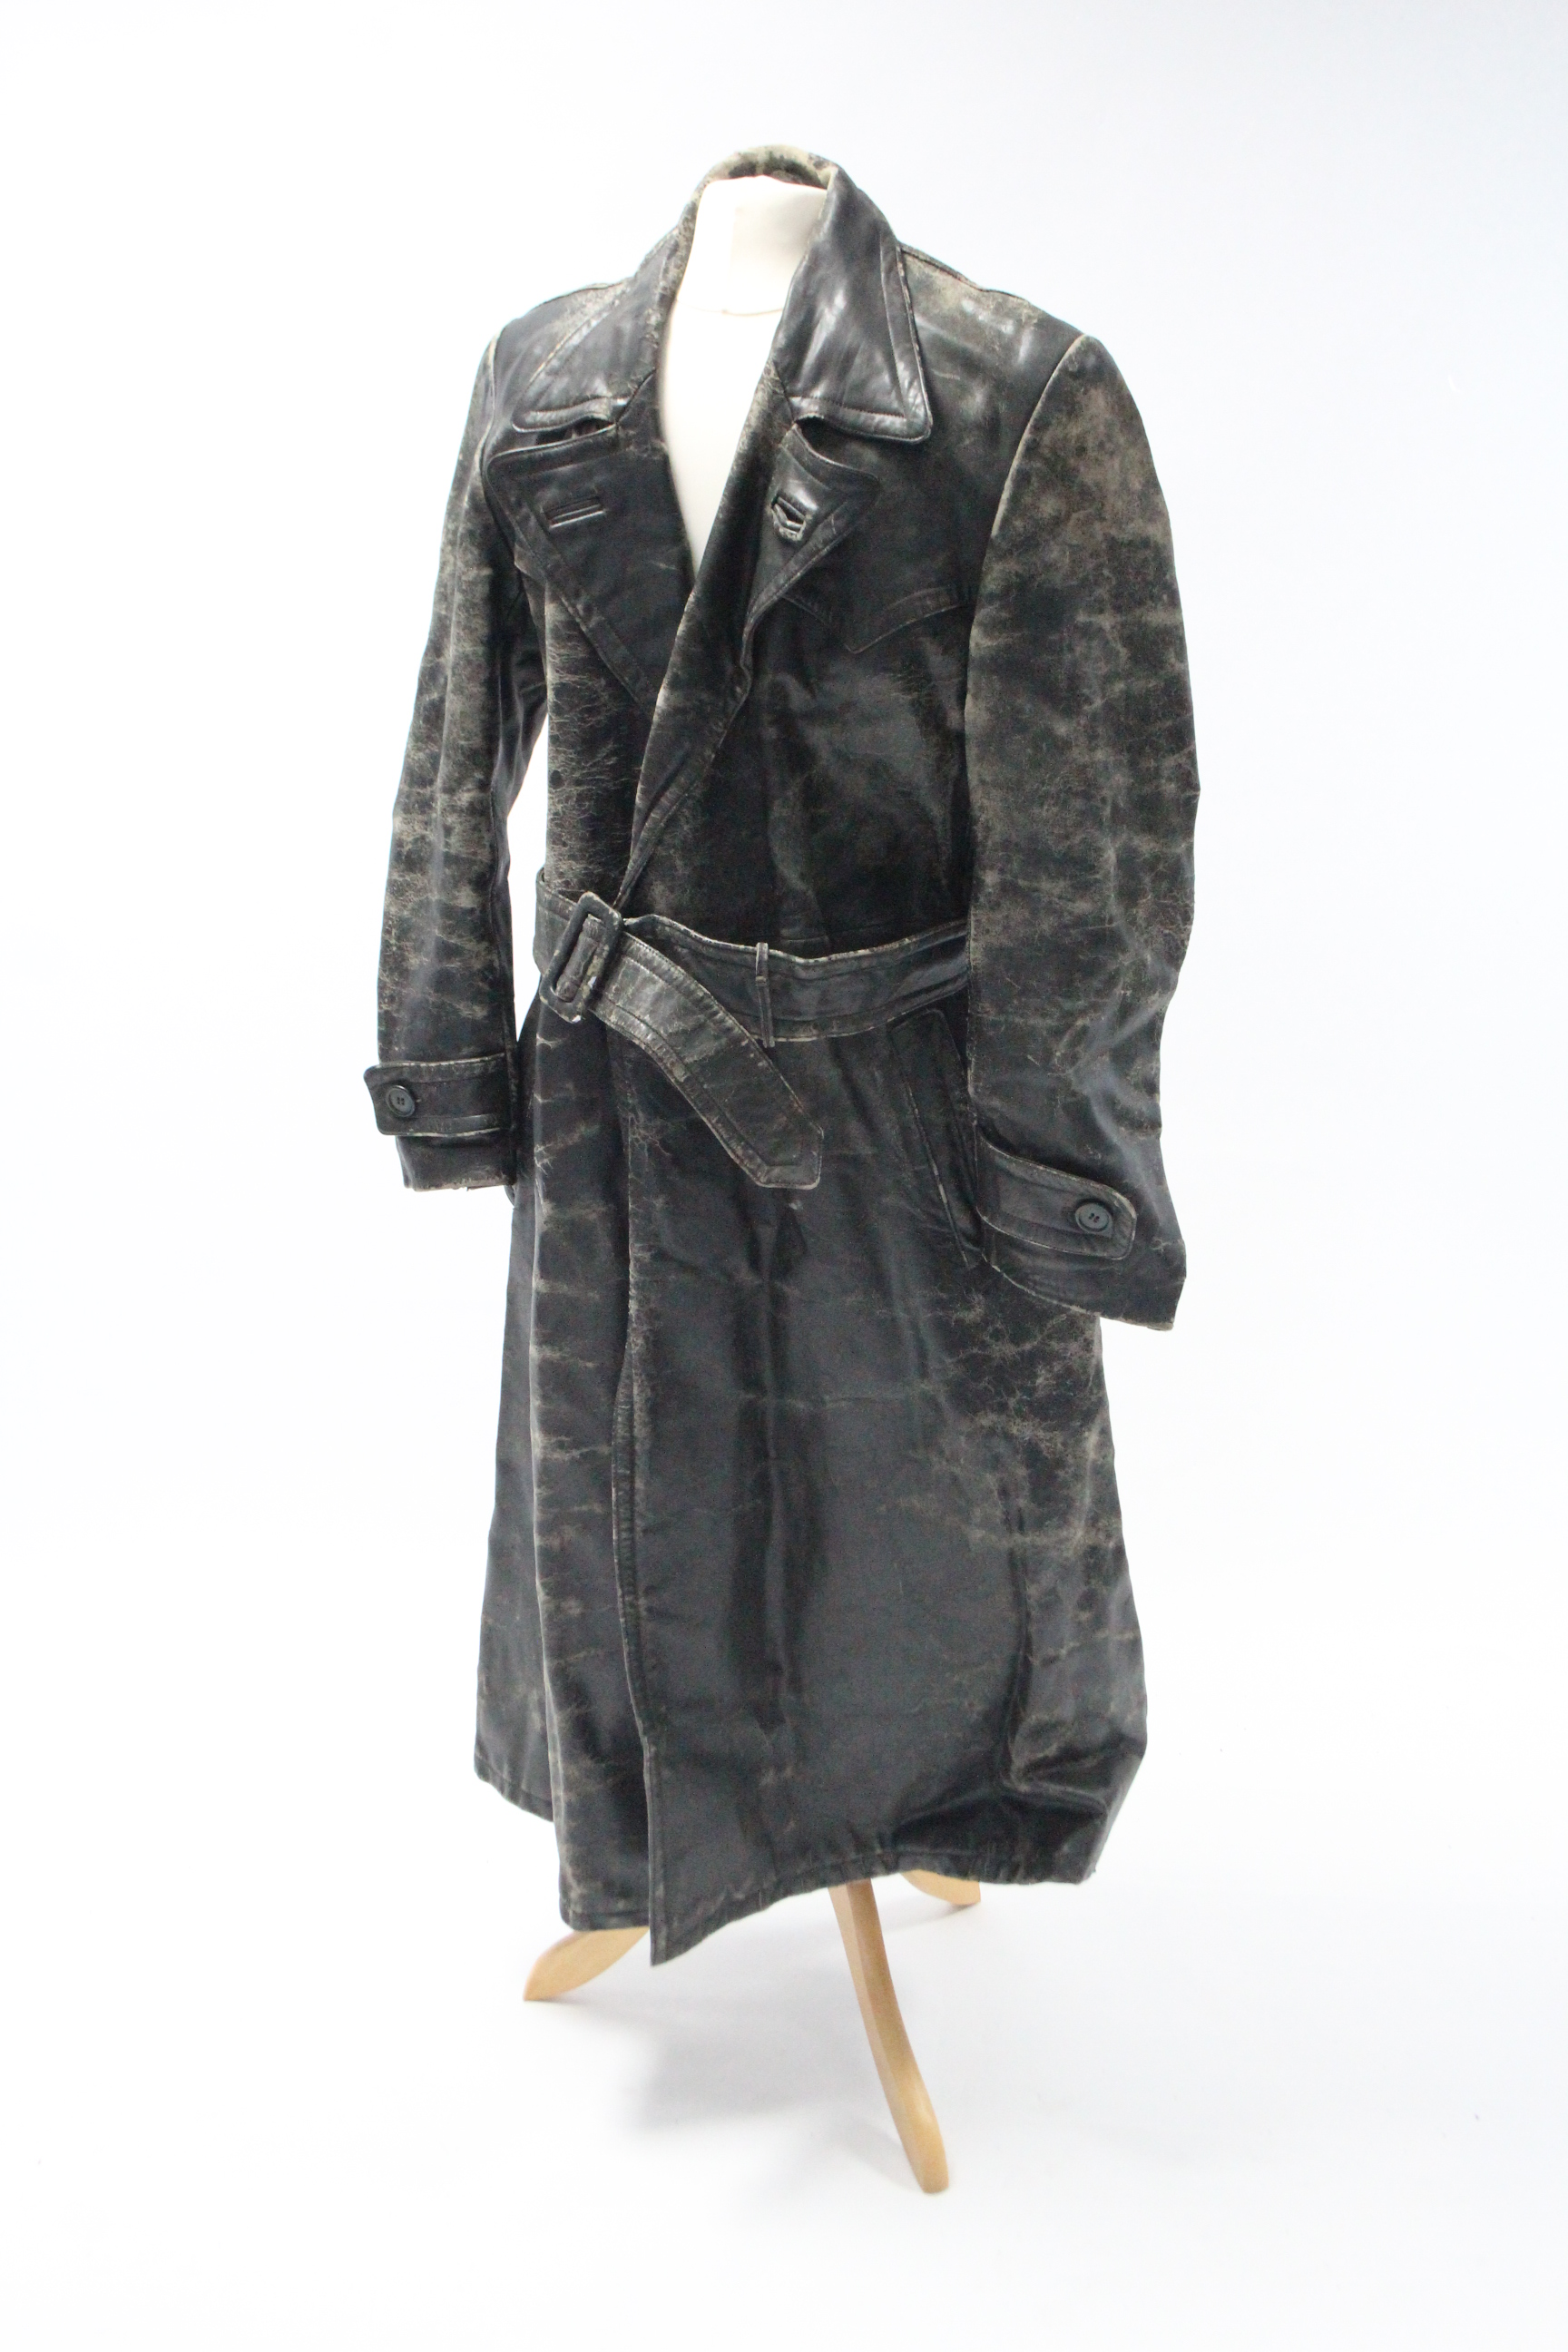 Lot 23 - A mid-20th century black-finish horse-hide German policeman's three-quarter length coat.